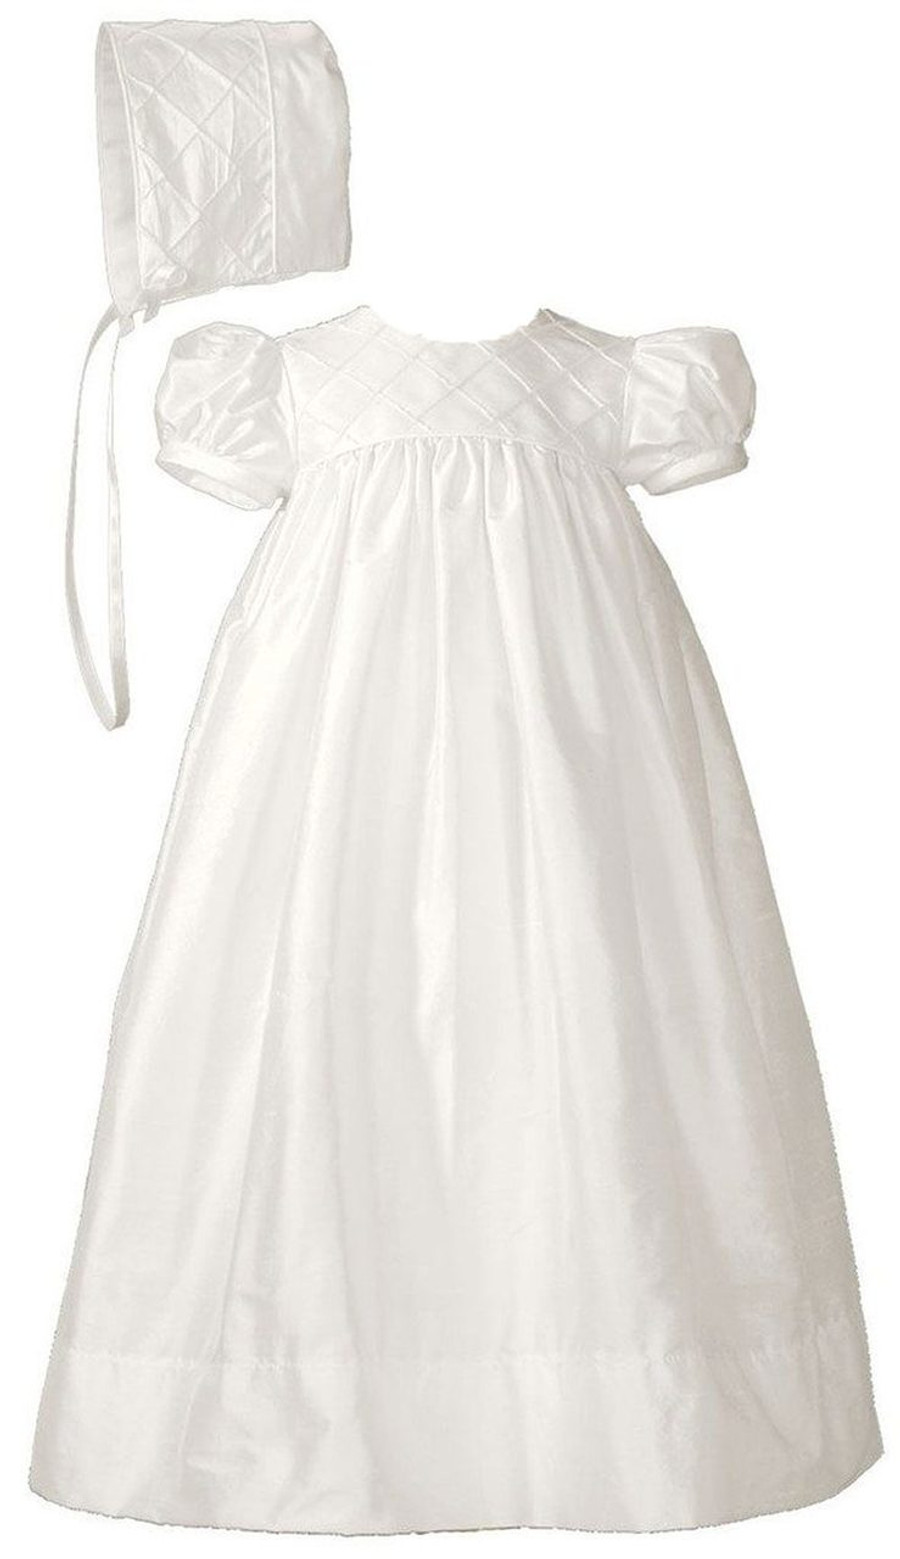 Girls Silk Dupioni Dress Baptism Gown with Lattice Bodice